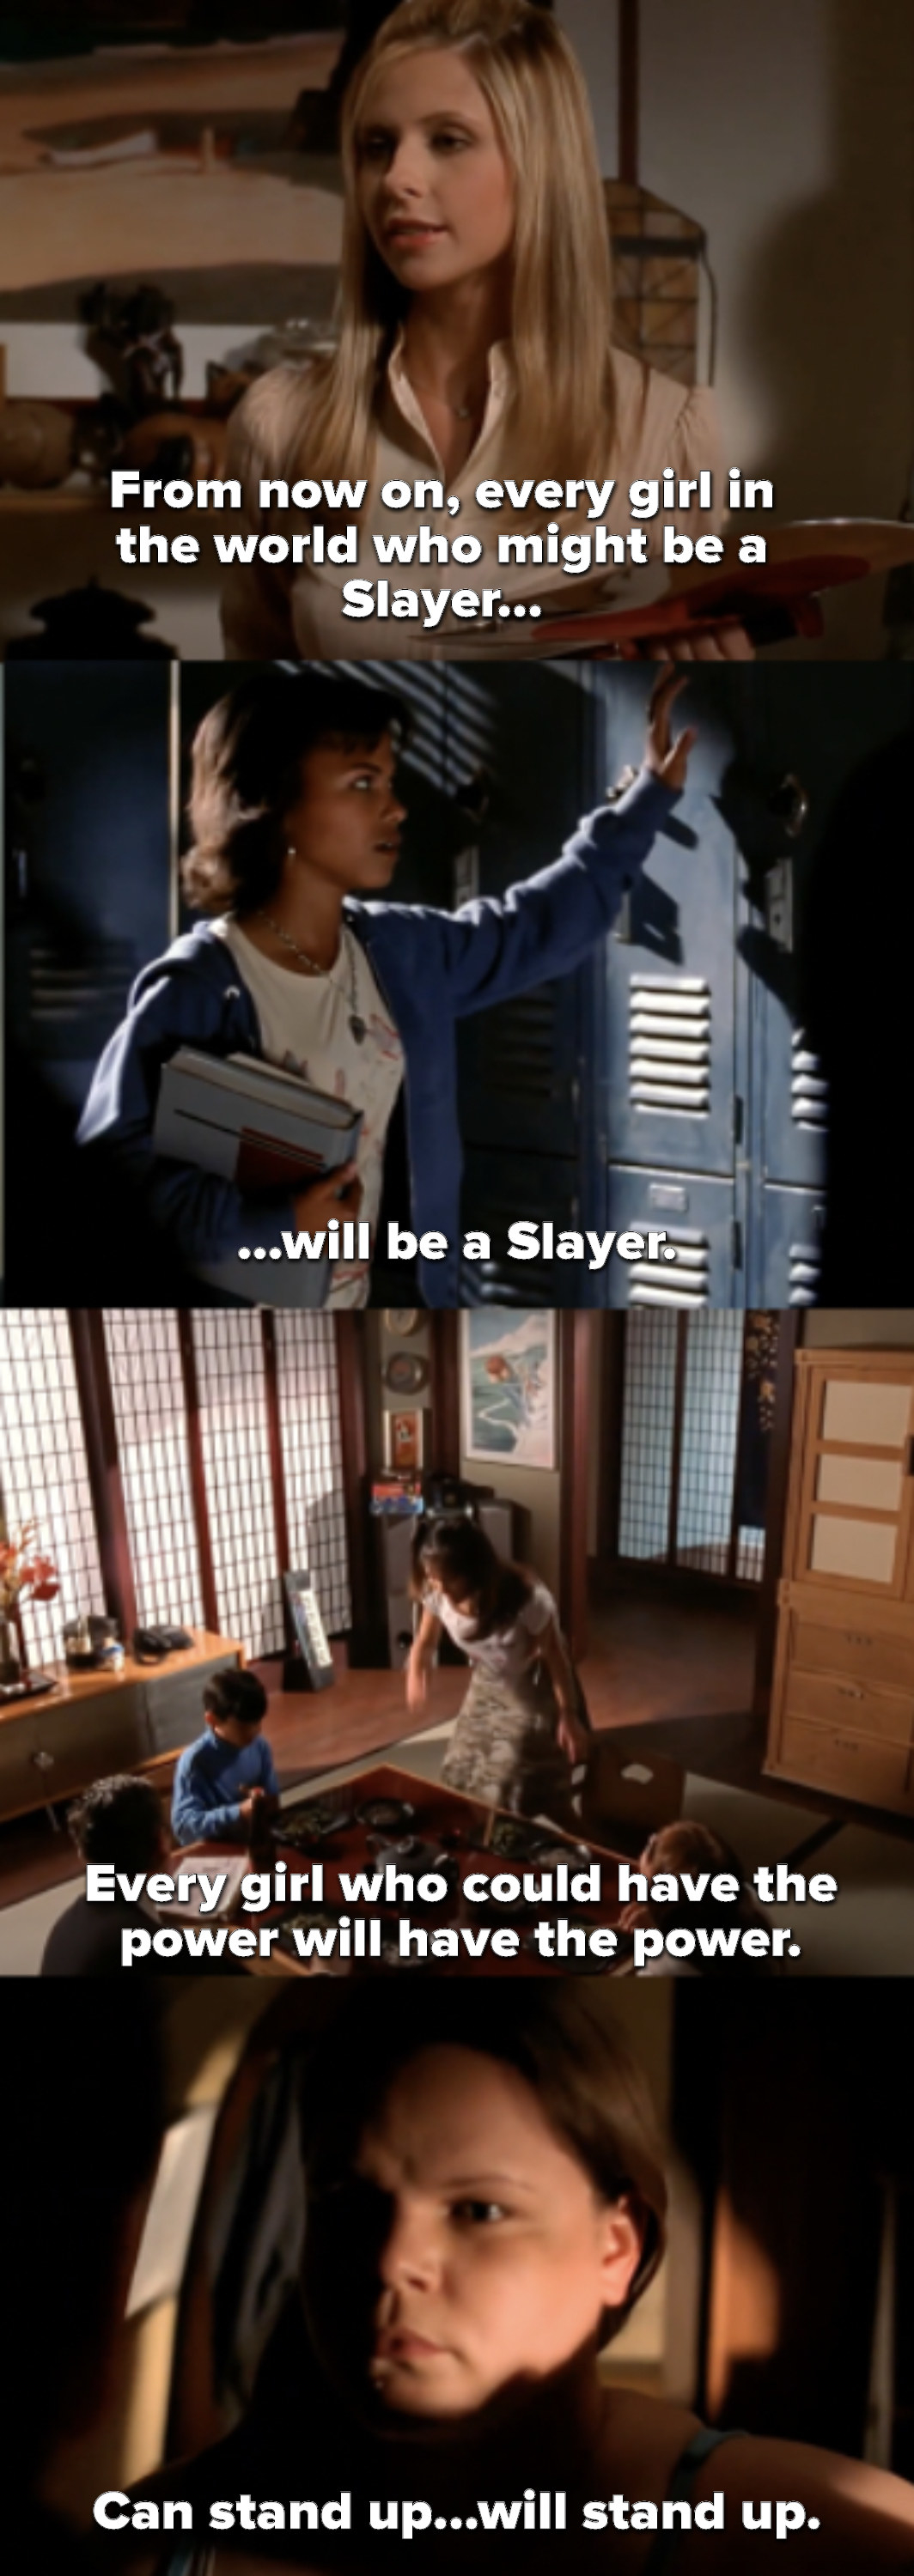 Buffy says from now on, every girl who could be a Slayer will, as we see young girls standing up for themselves